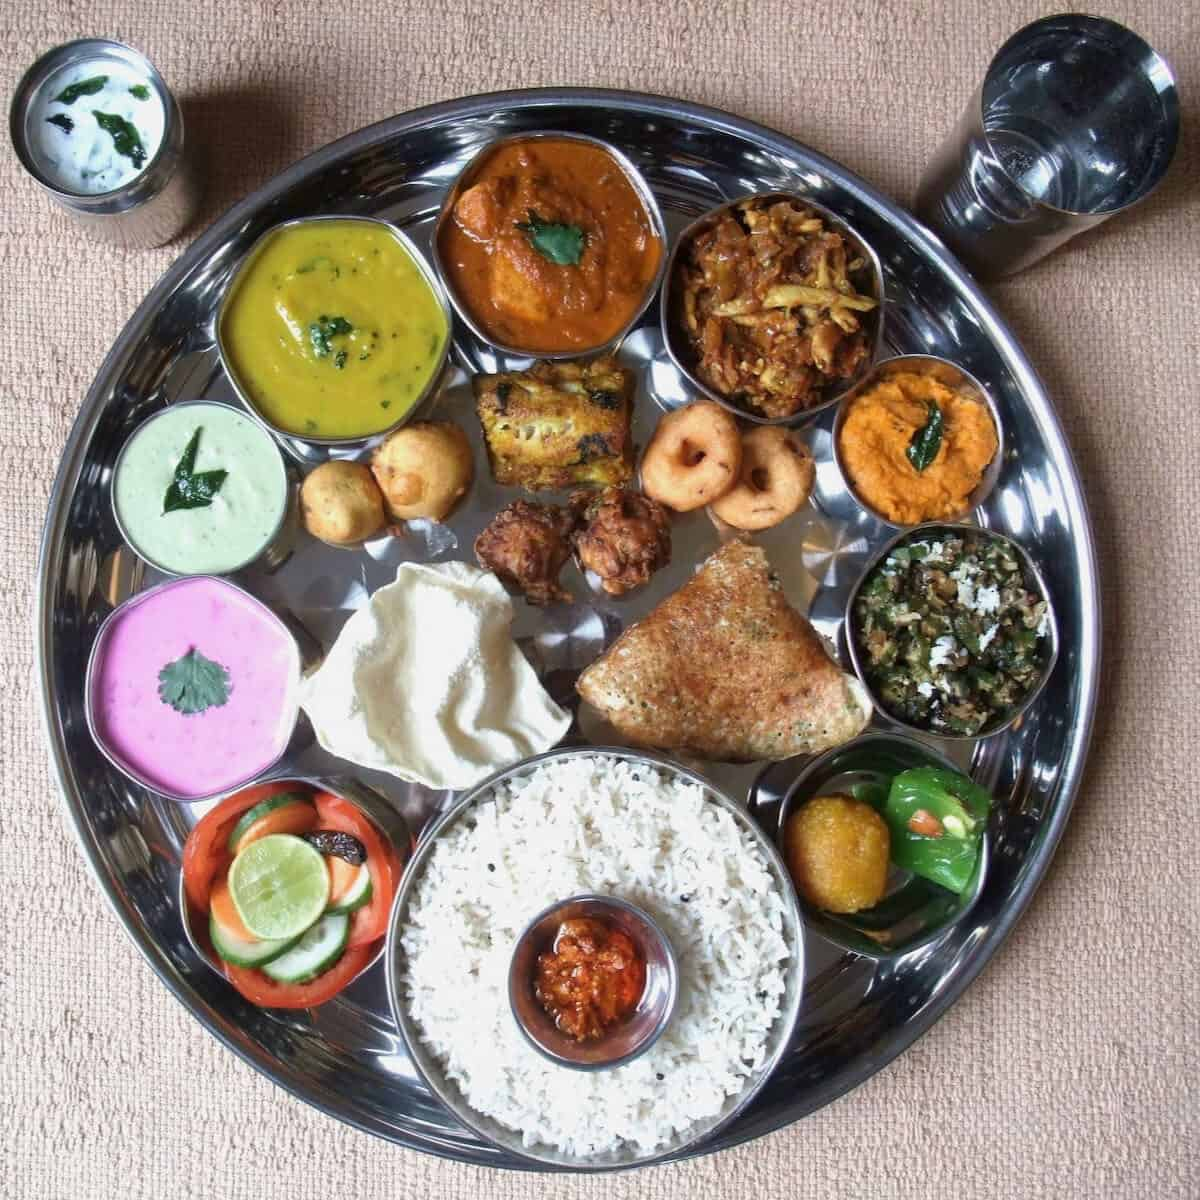 An Indian thali meal ~ a typical Indan meal.